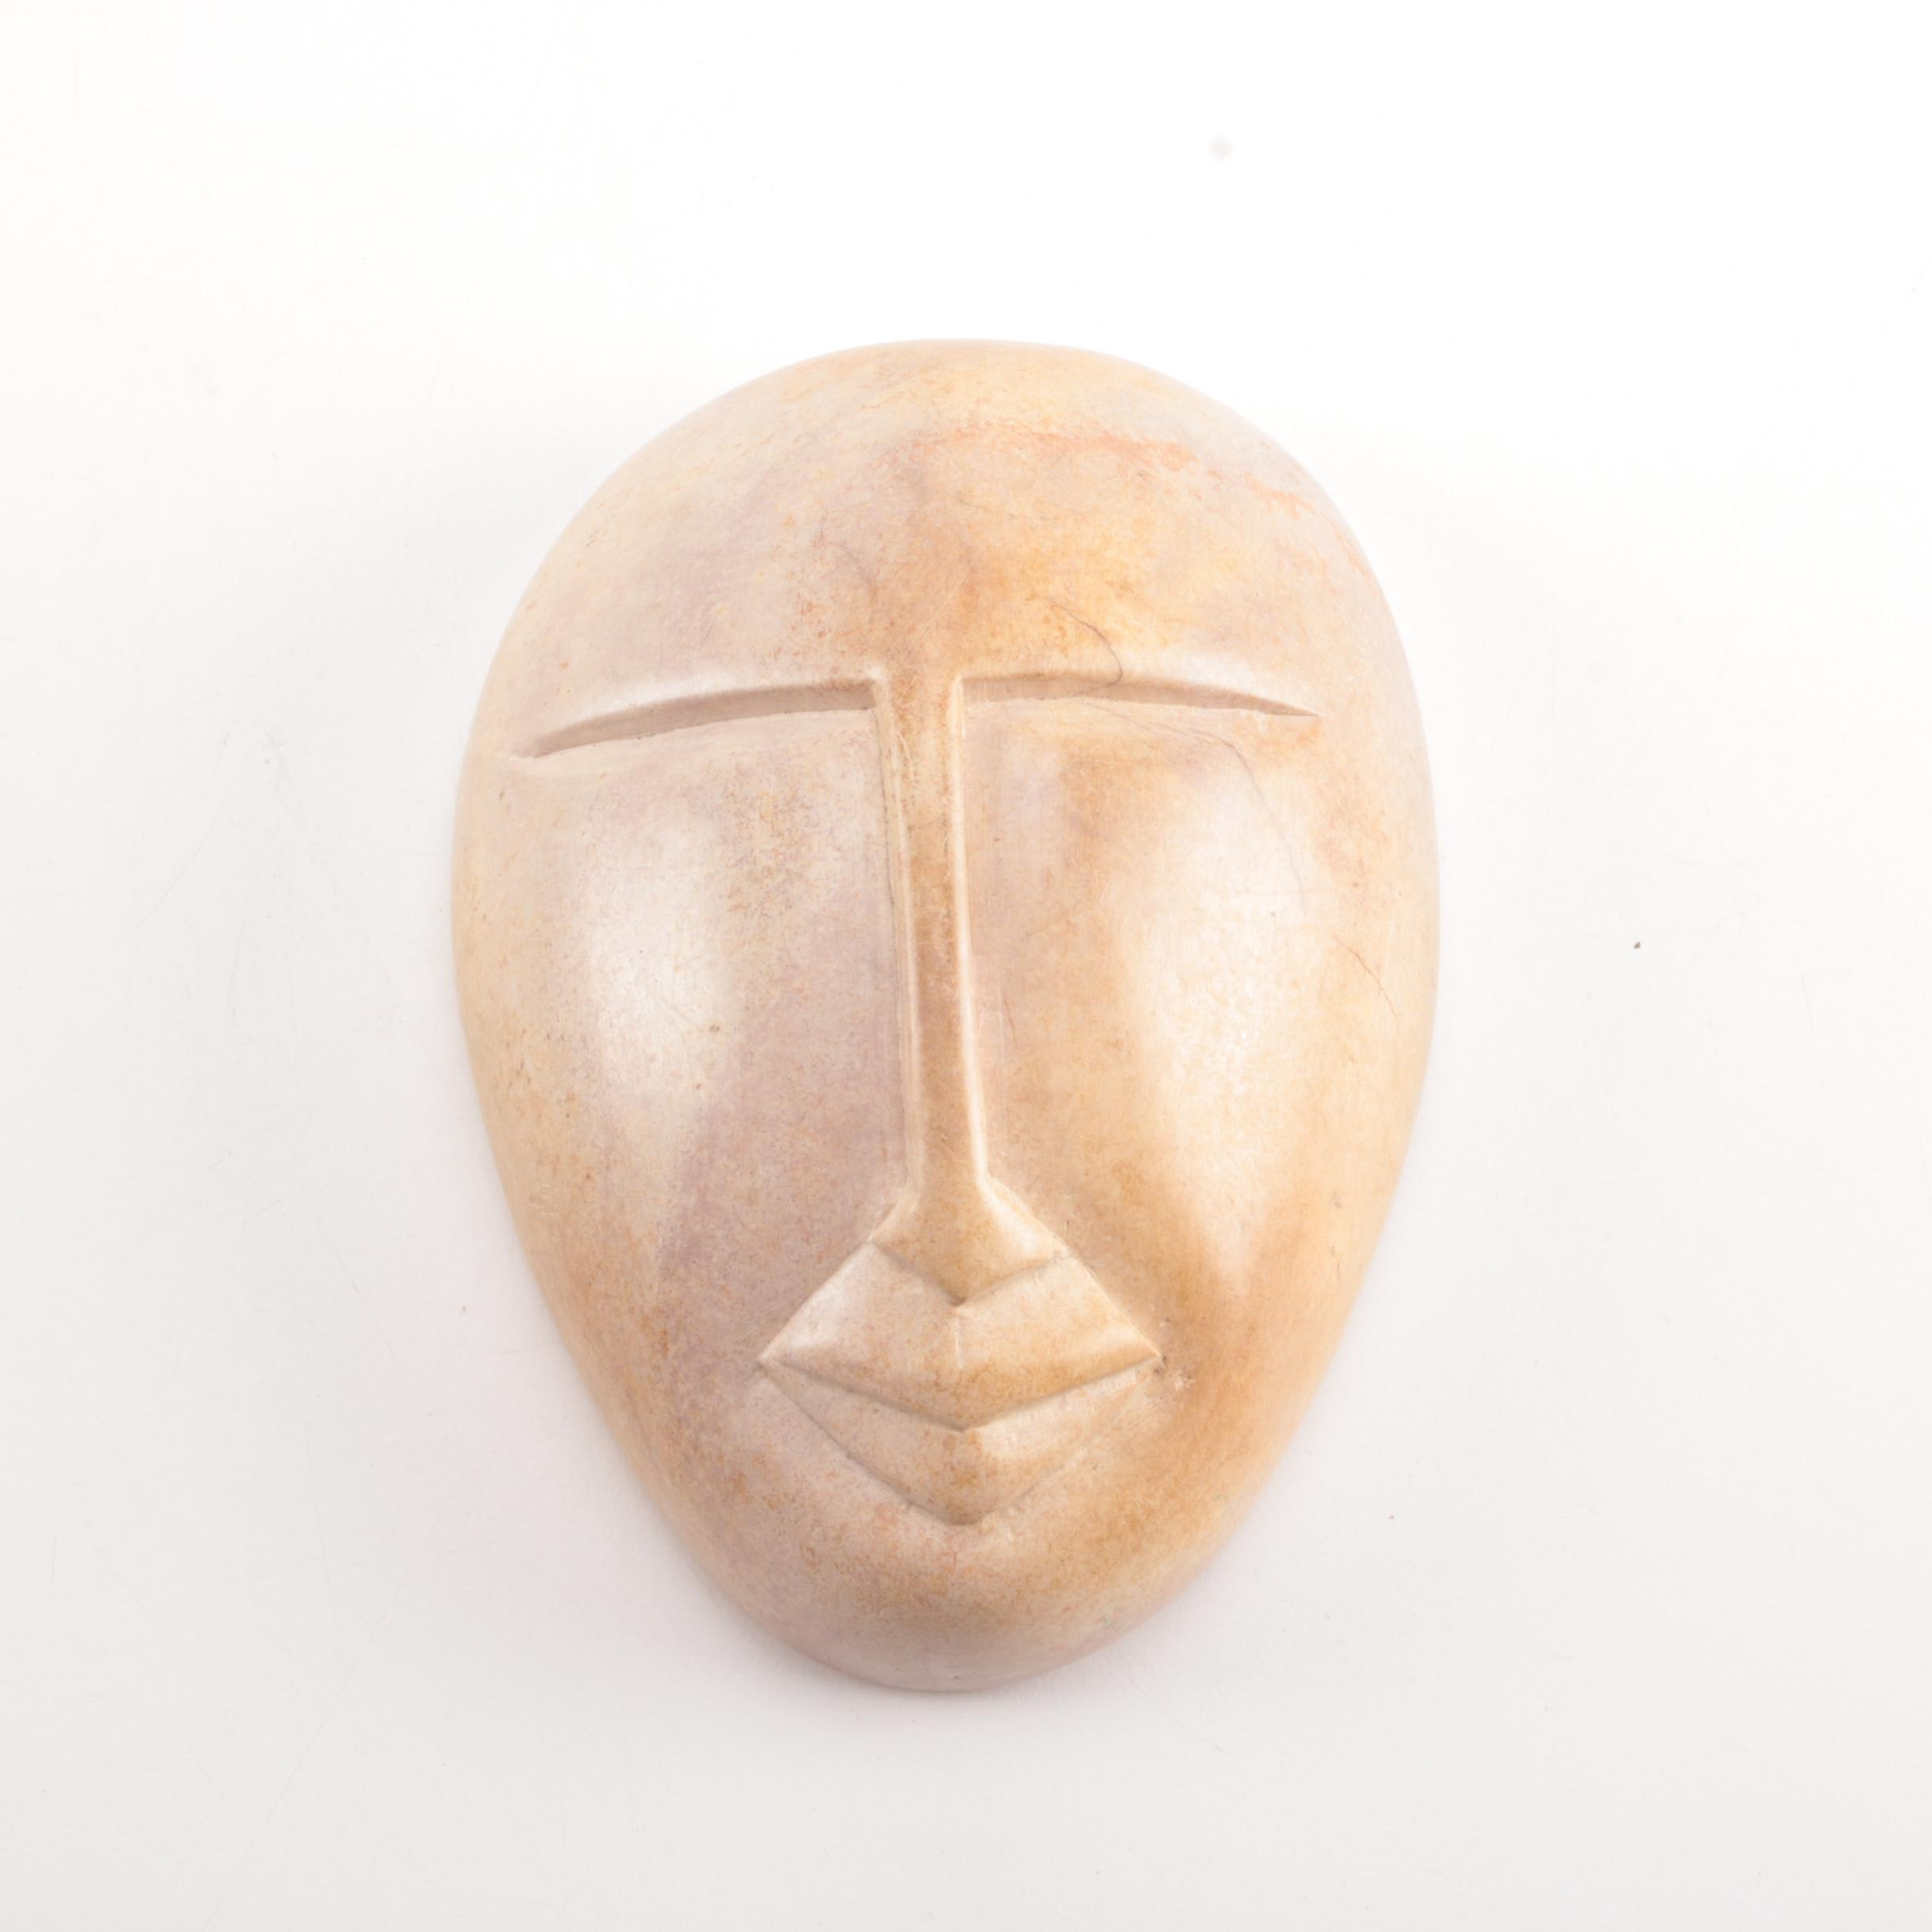 Inuit-Inspired Carved Soapstone Face